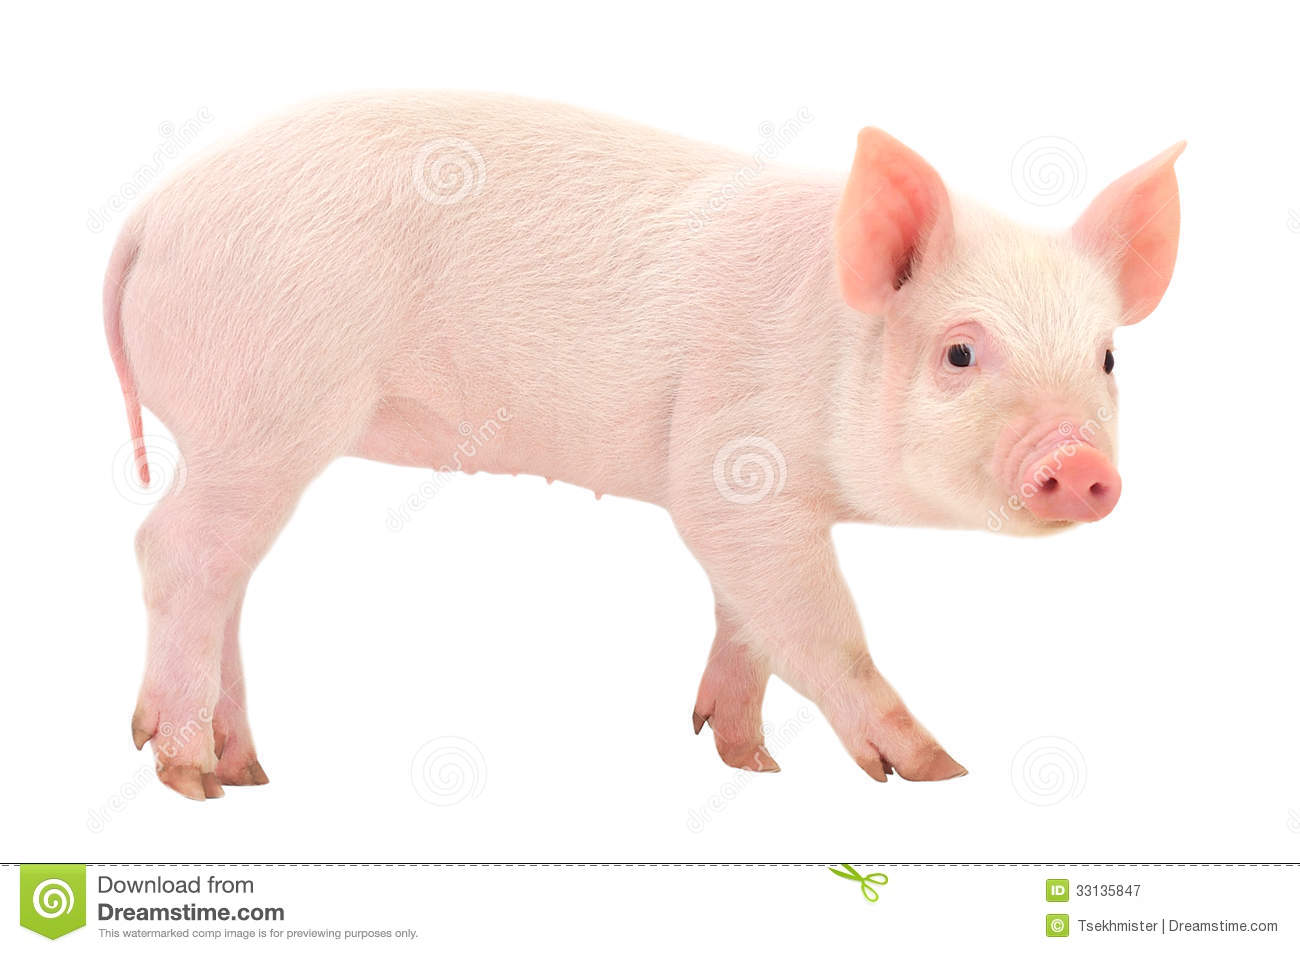 Pig On White Royalty Free Stock Photography Image 33135847 : pig white isoated background 33135847 from www.dreamstime.com size 1300 x 953 jpeg 87kB